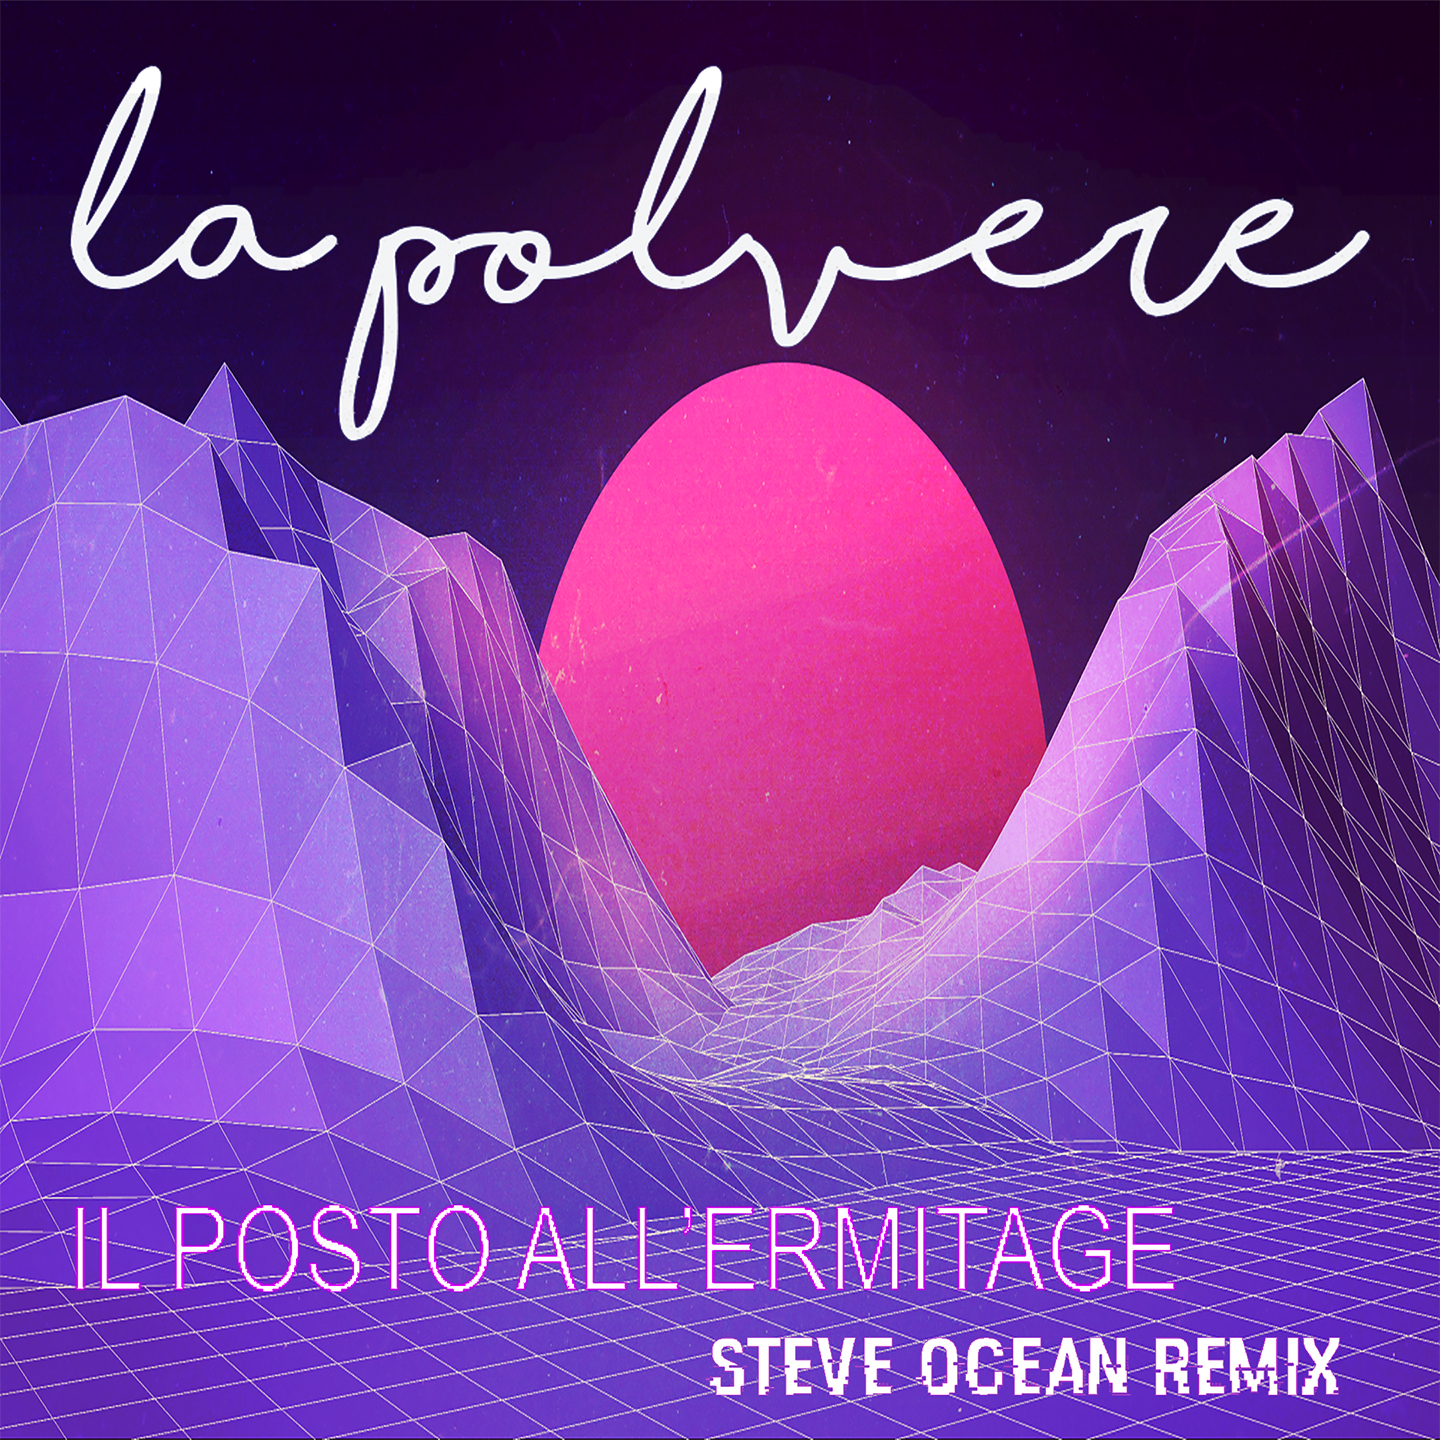 Il Posto all'Ermitage (Steve Ocean Remix)